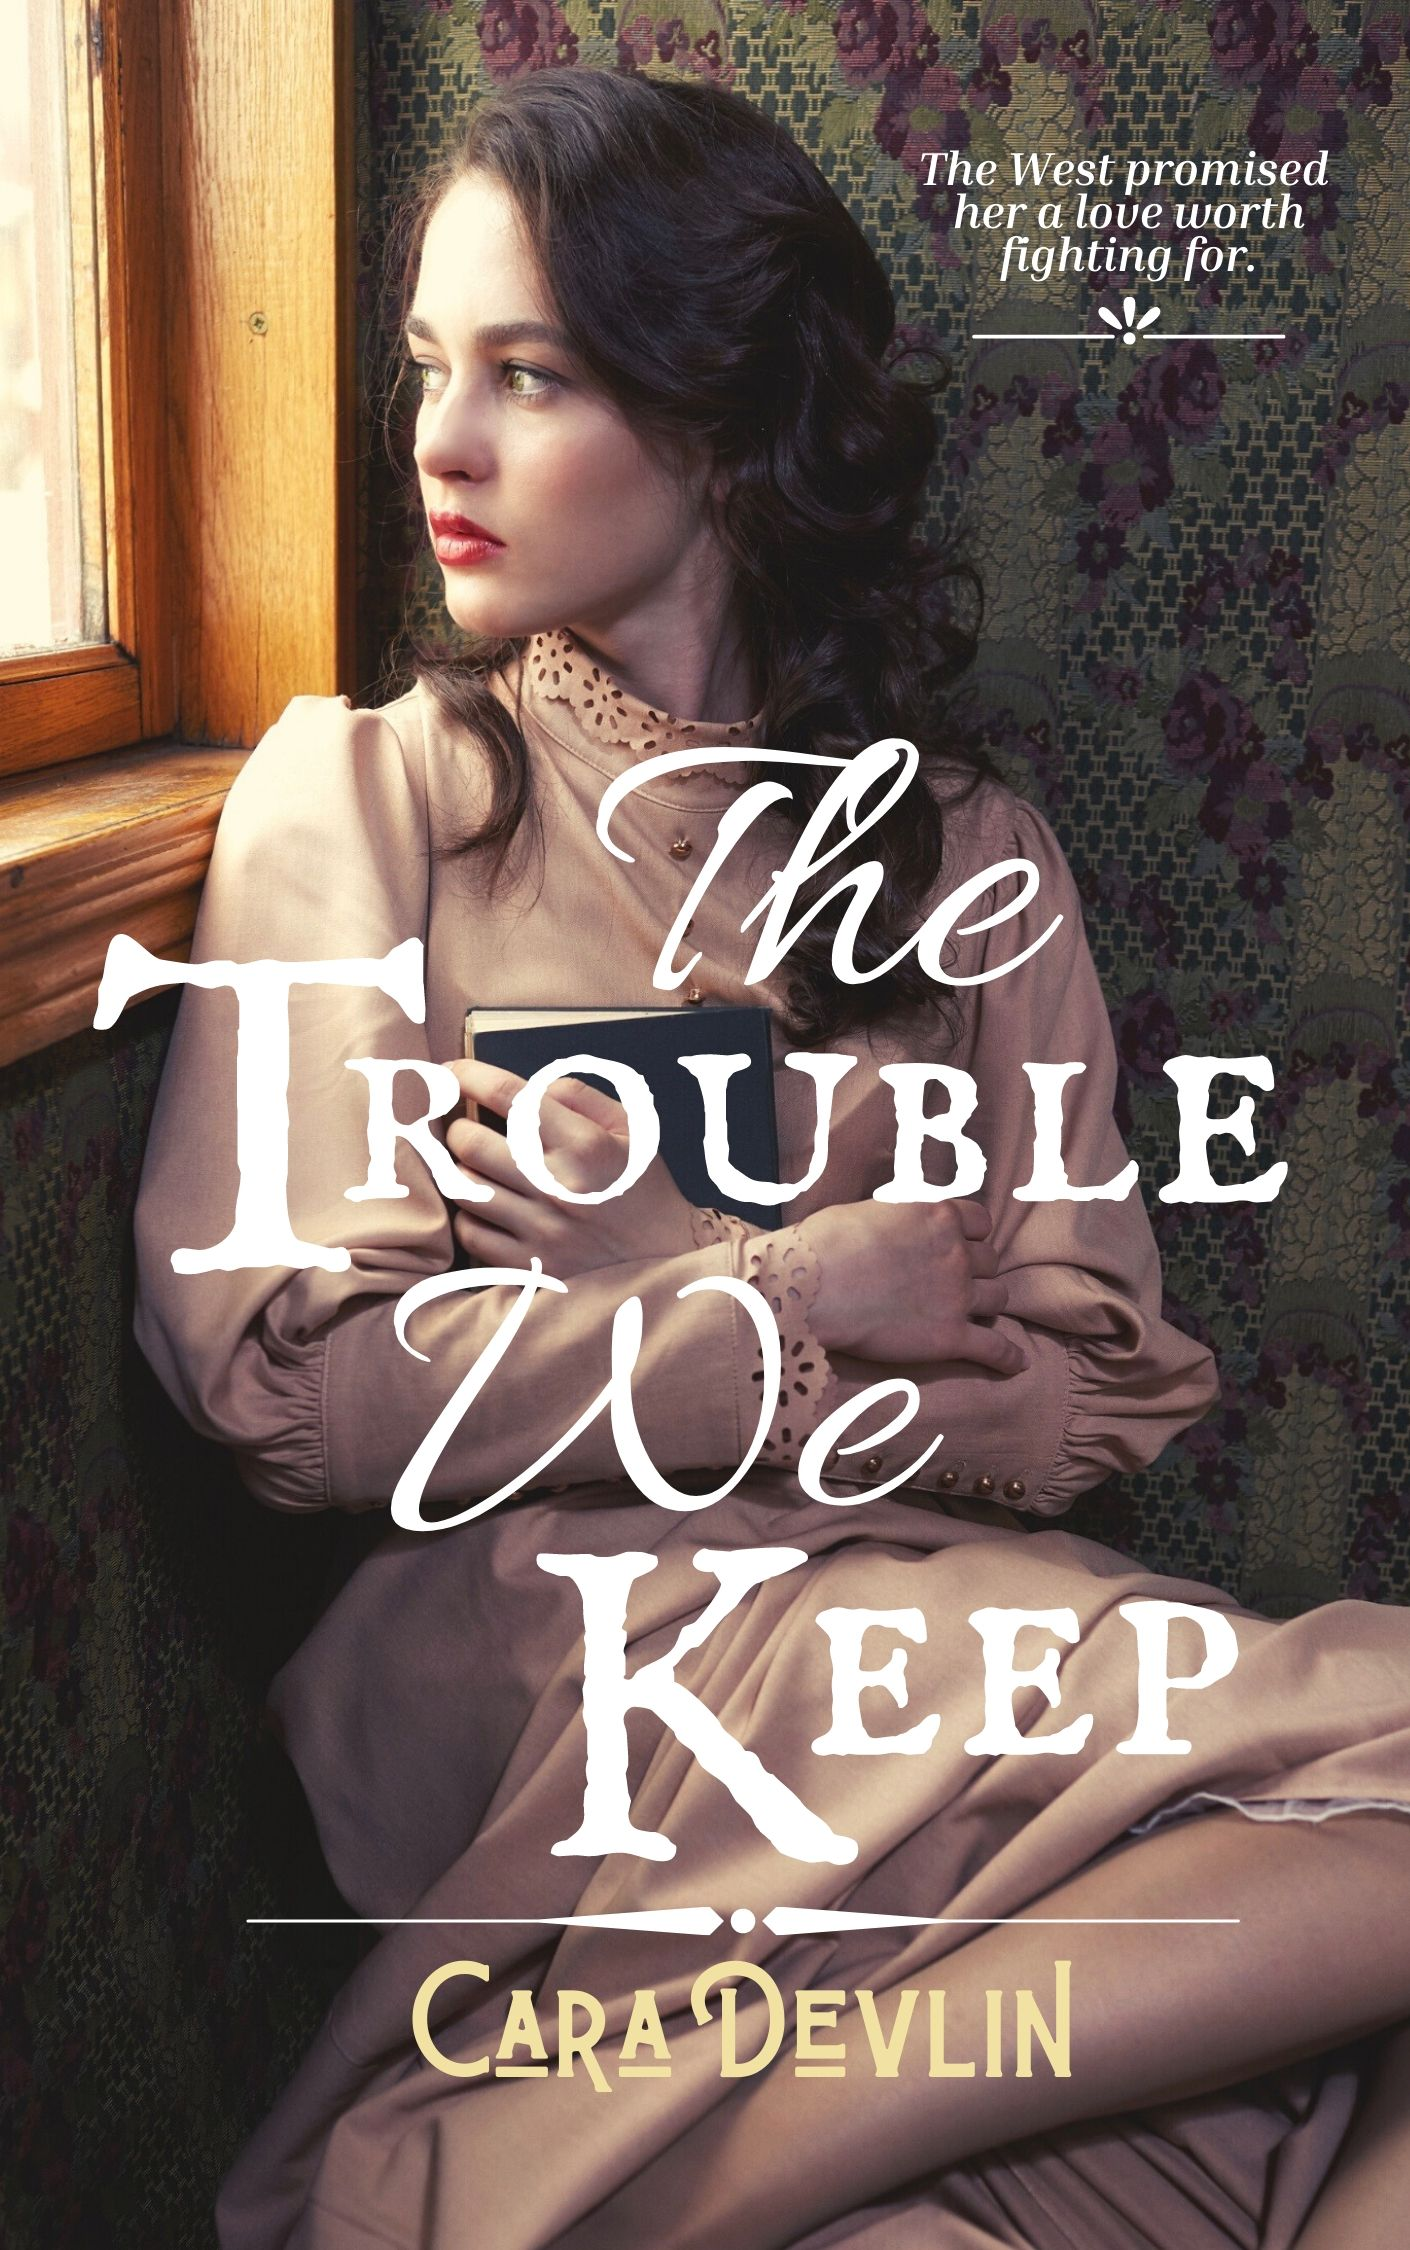 The Trouble We Keep - Cara Devlin